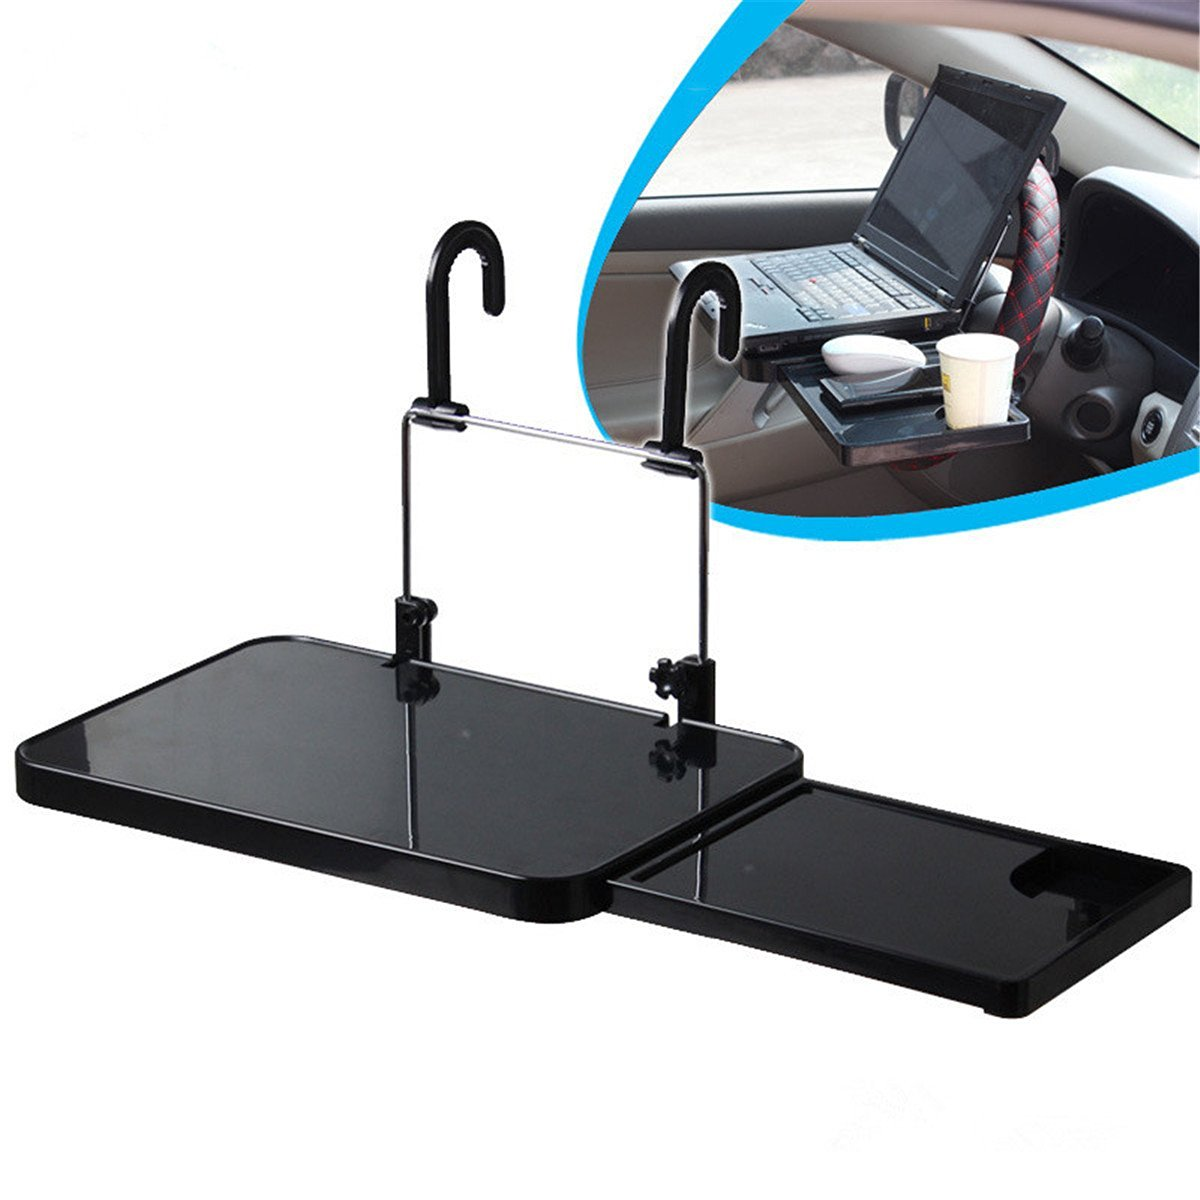 Zebratown Multi-functional Car Vehicle Seat Portable Foldable Car Seat Back Pc Mount Tray Black Table Laptop Notebook Desk Table Car Dining Food Drink Desk Cup Holder